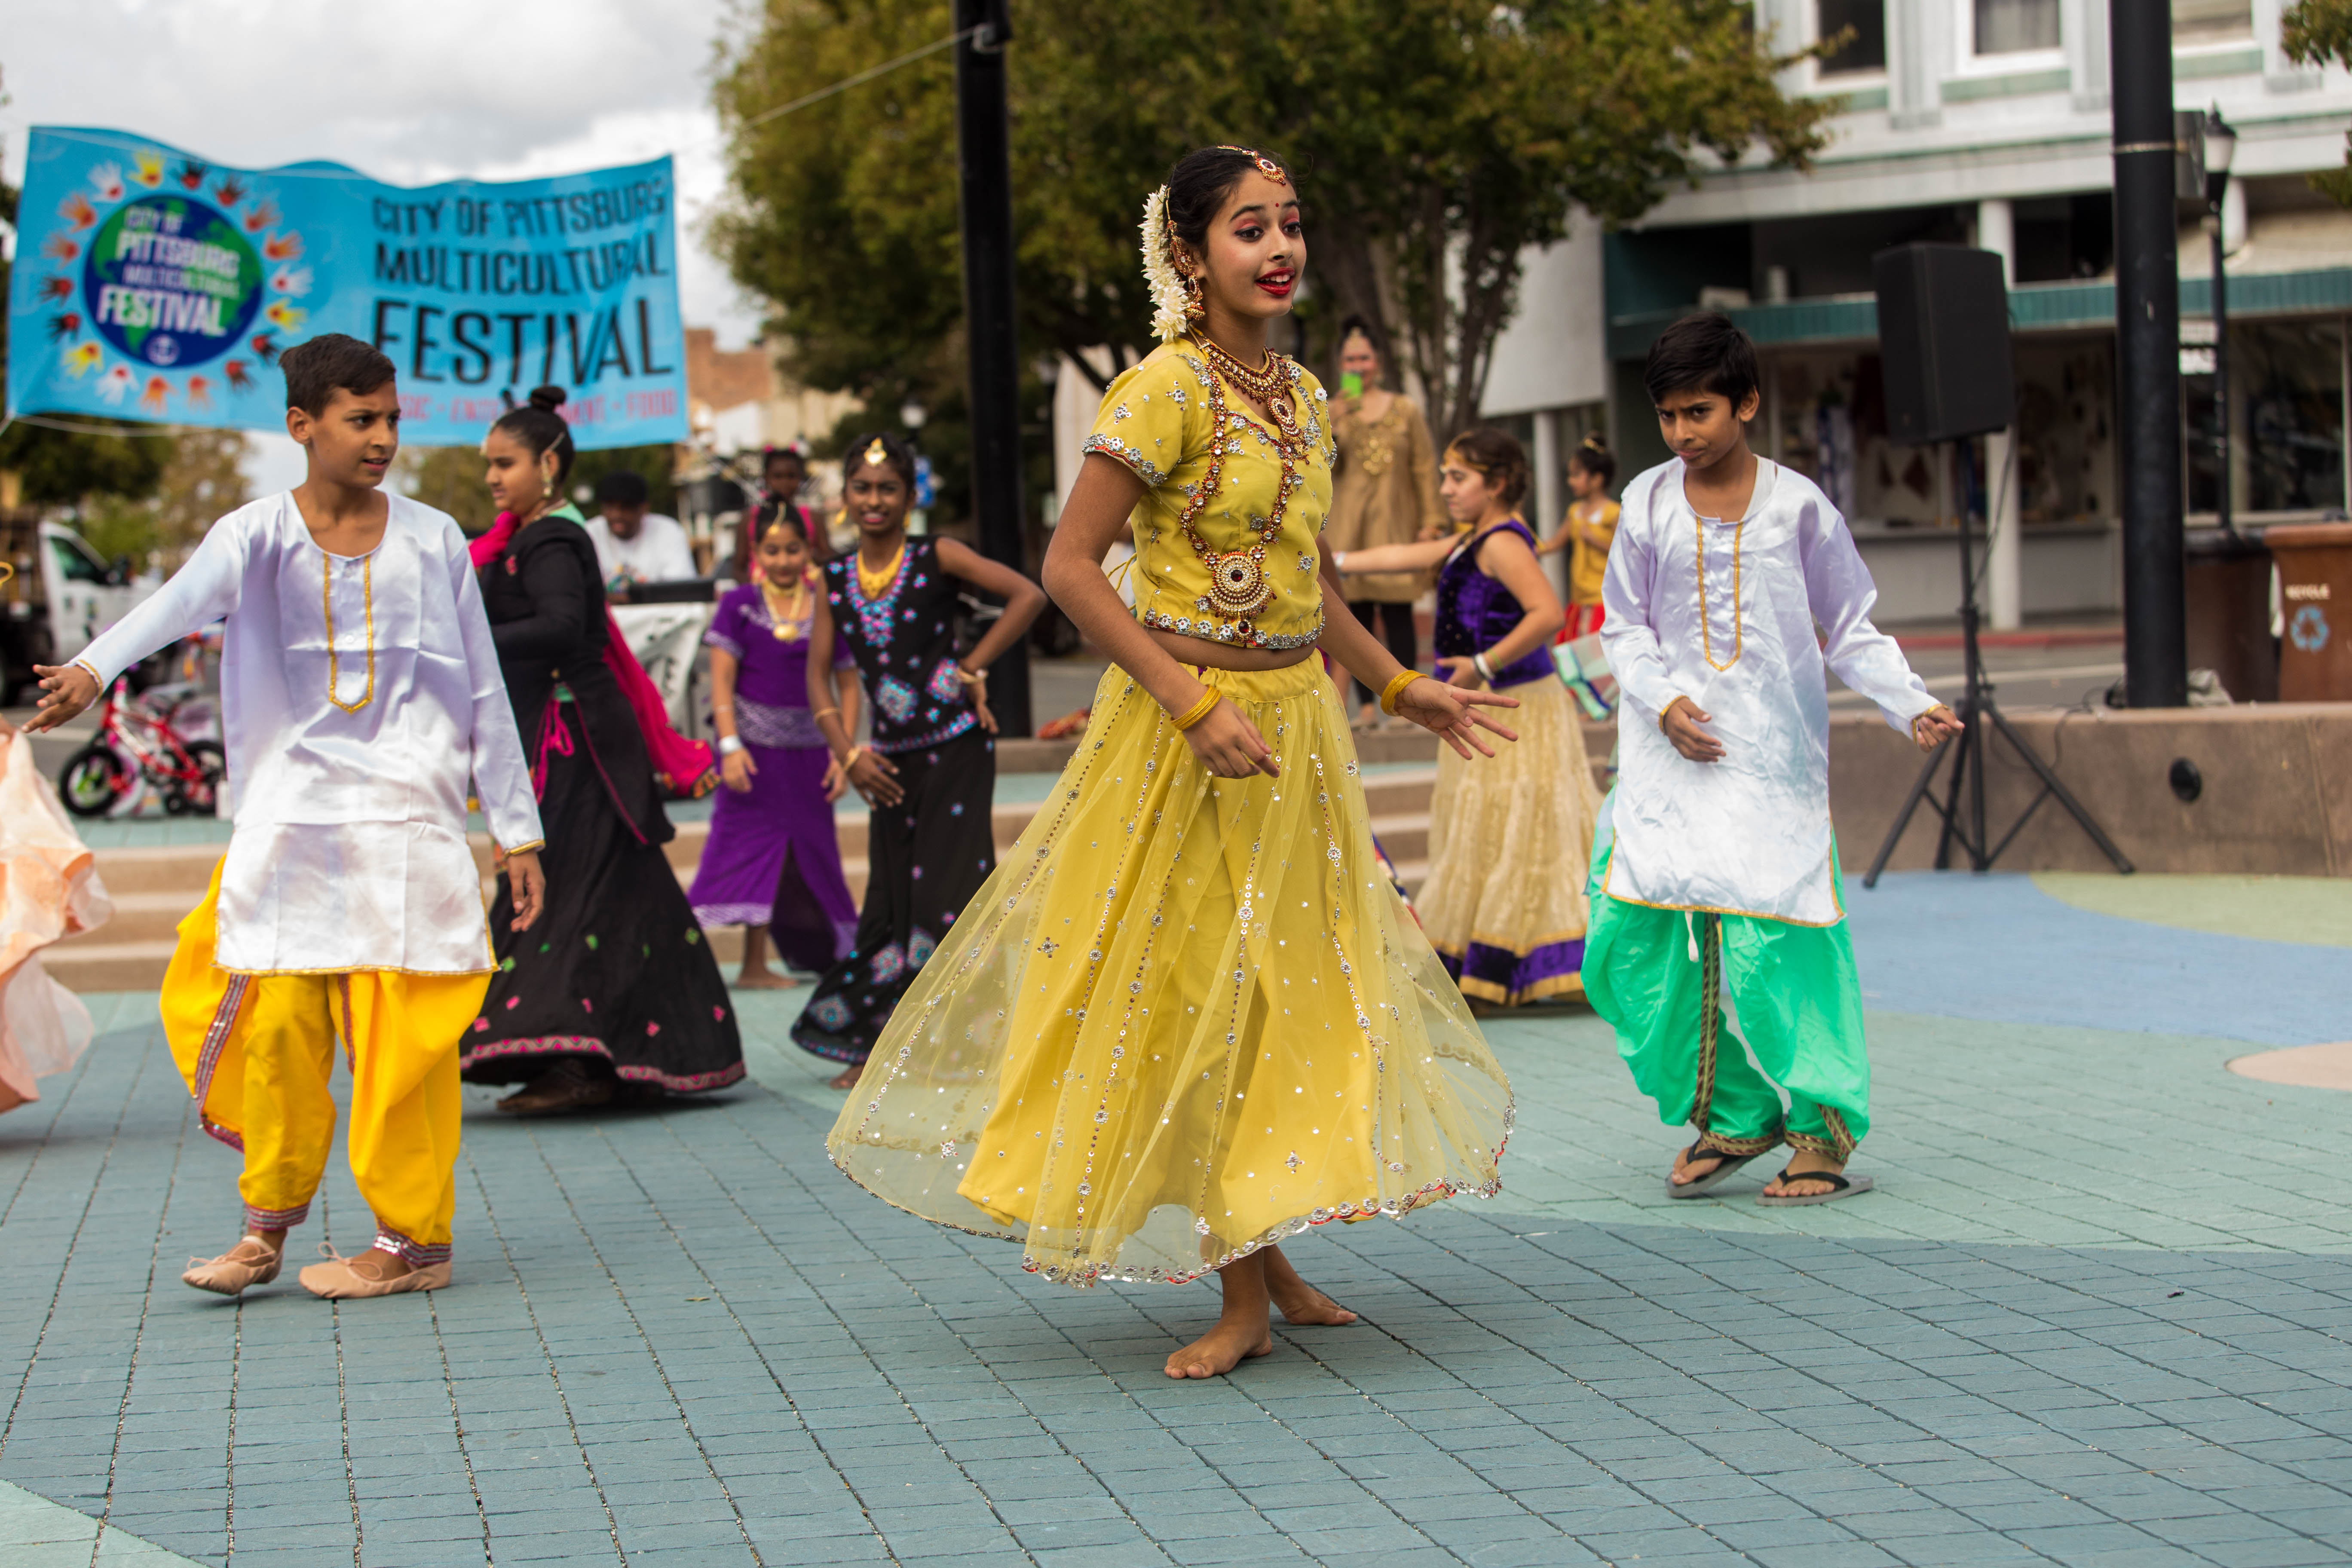 CITY_PITTSBURG_MULTICULTURAL_OCTOBER_2016 (682)